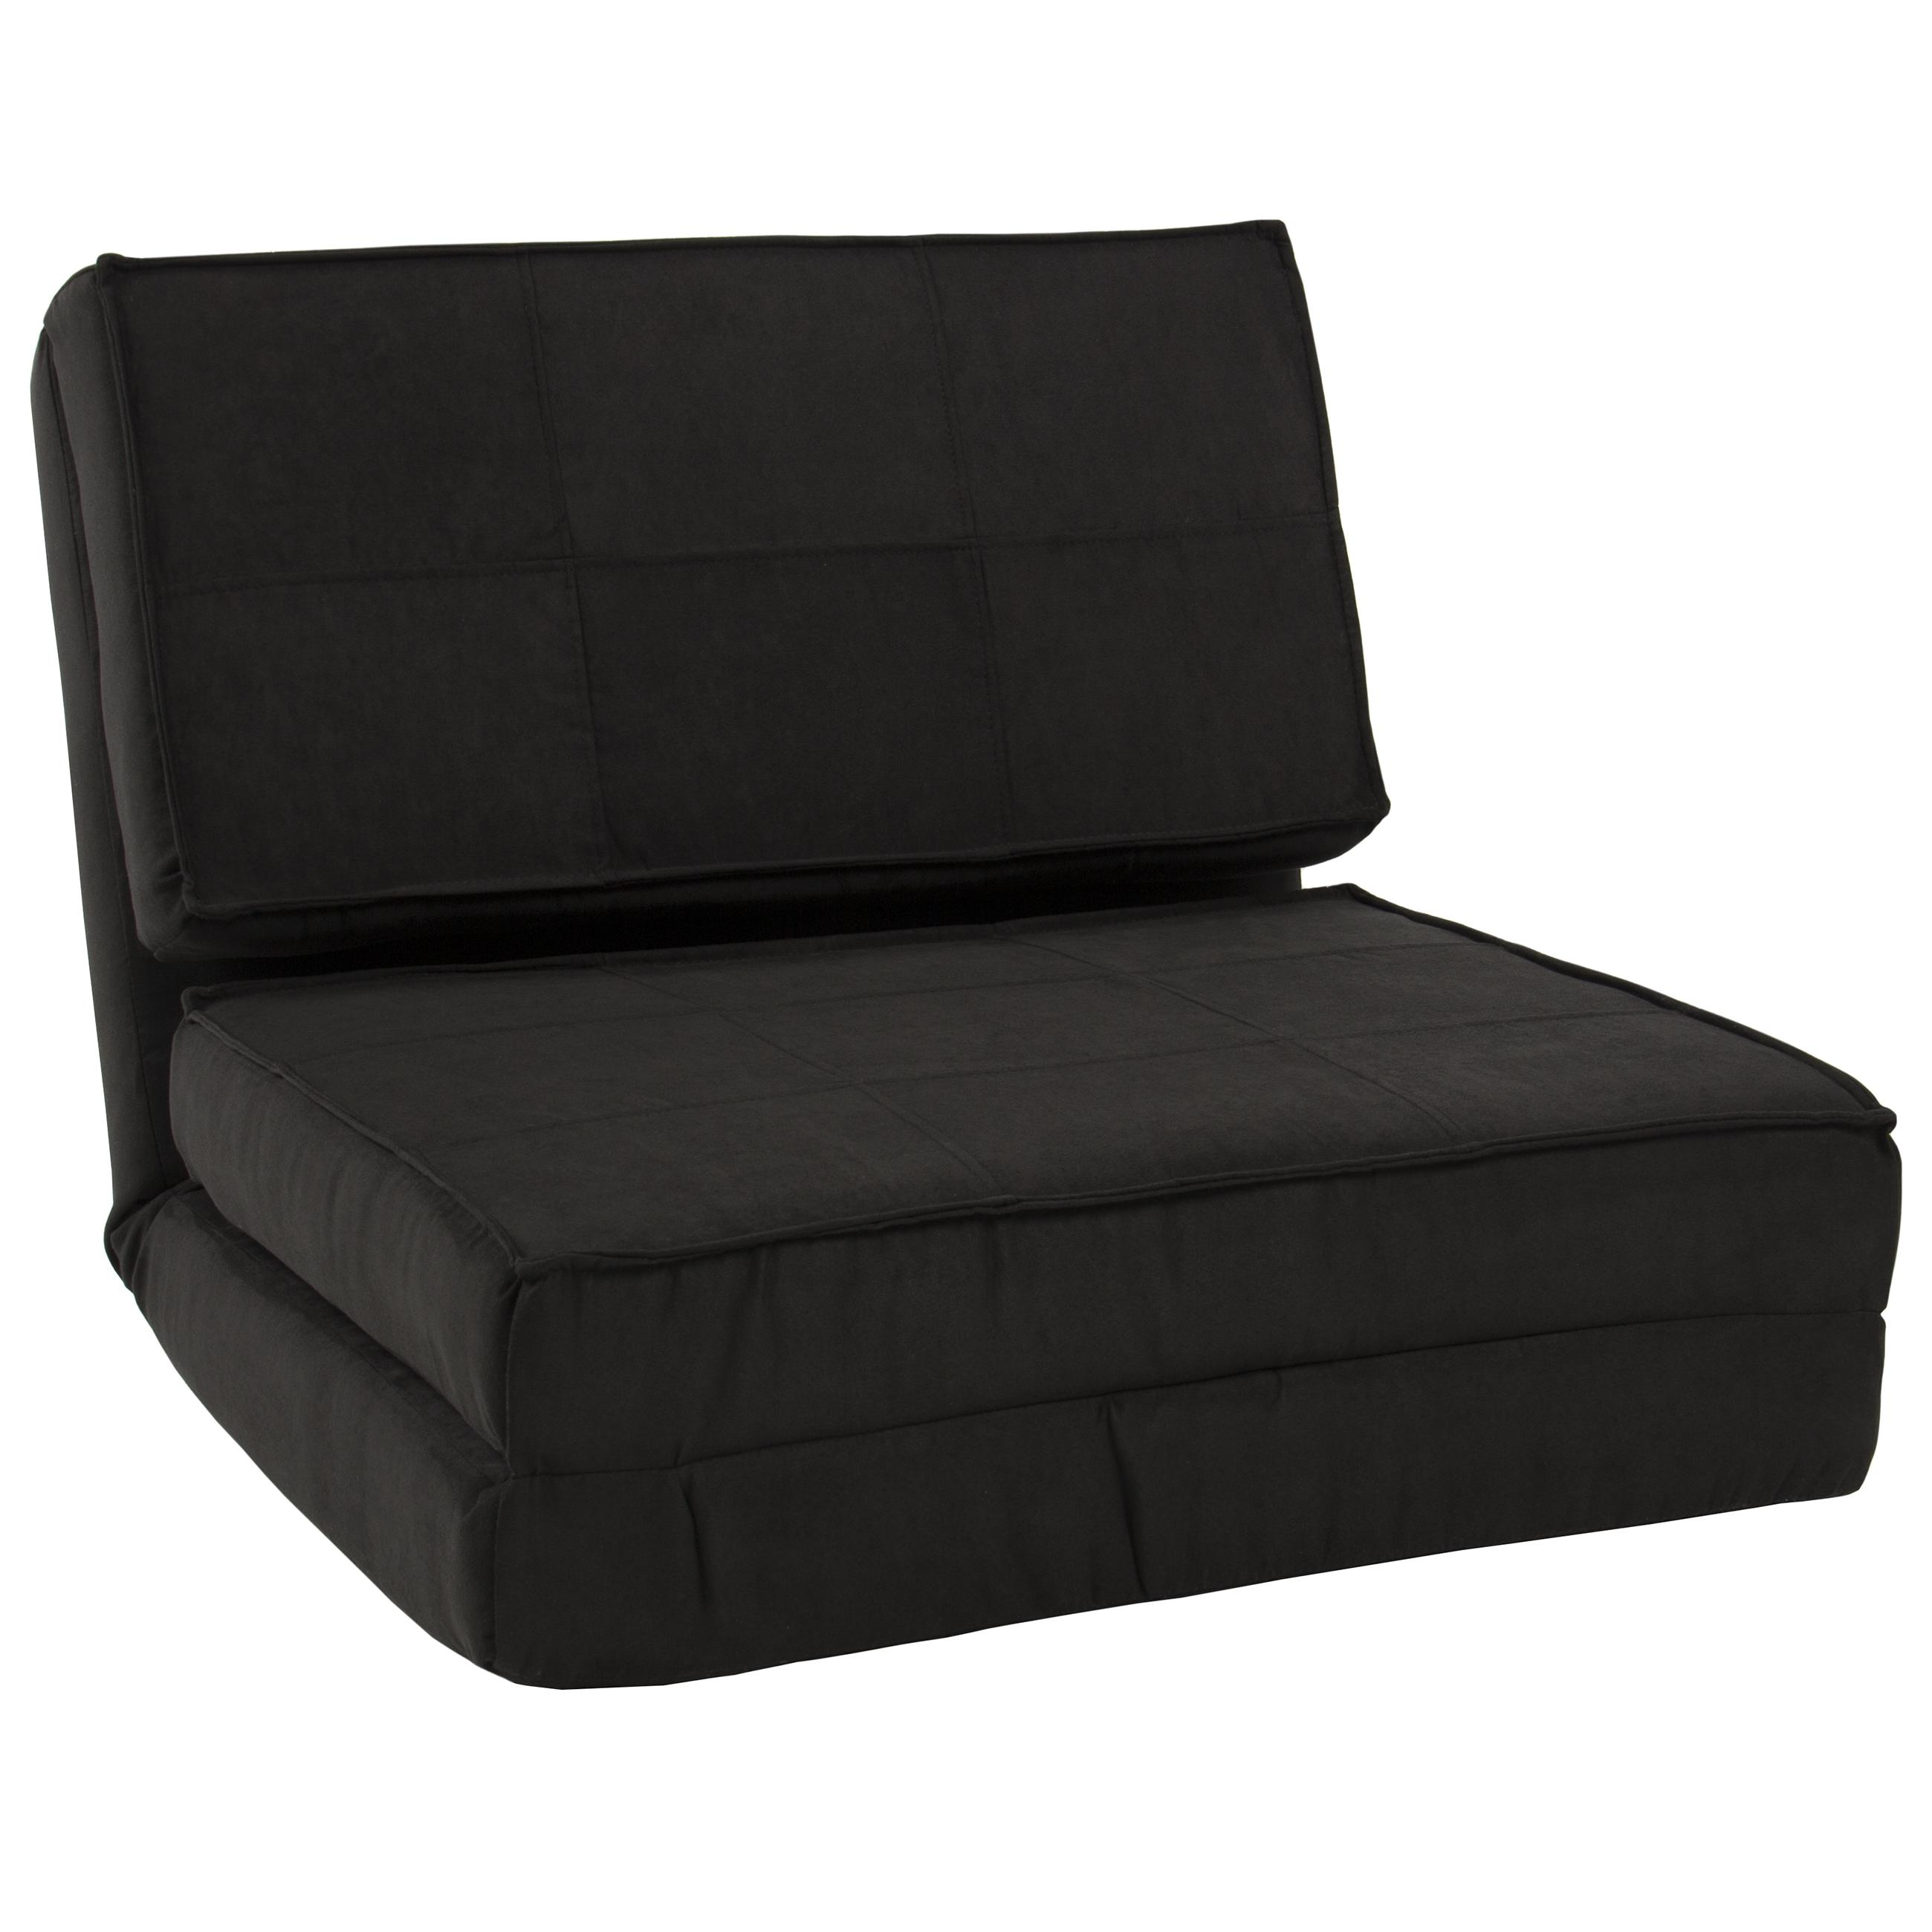 Best Choice Products Convertible Sleeper Chair Bed (Black For Folding Sofa Chairs (Image 4 of 20)